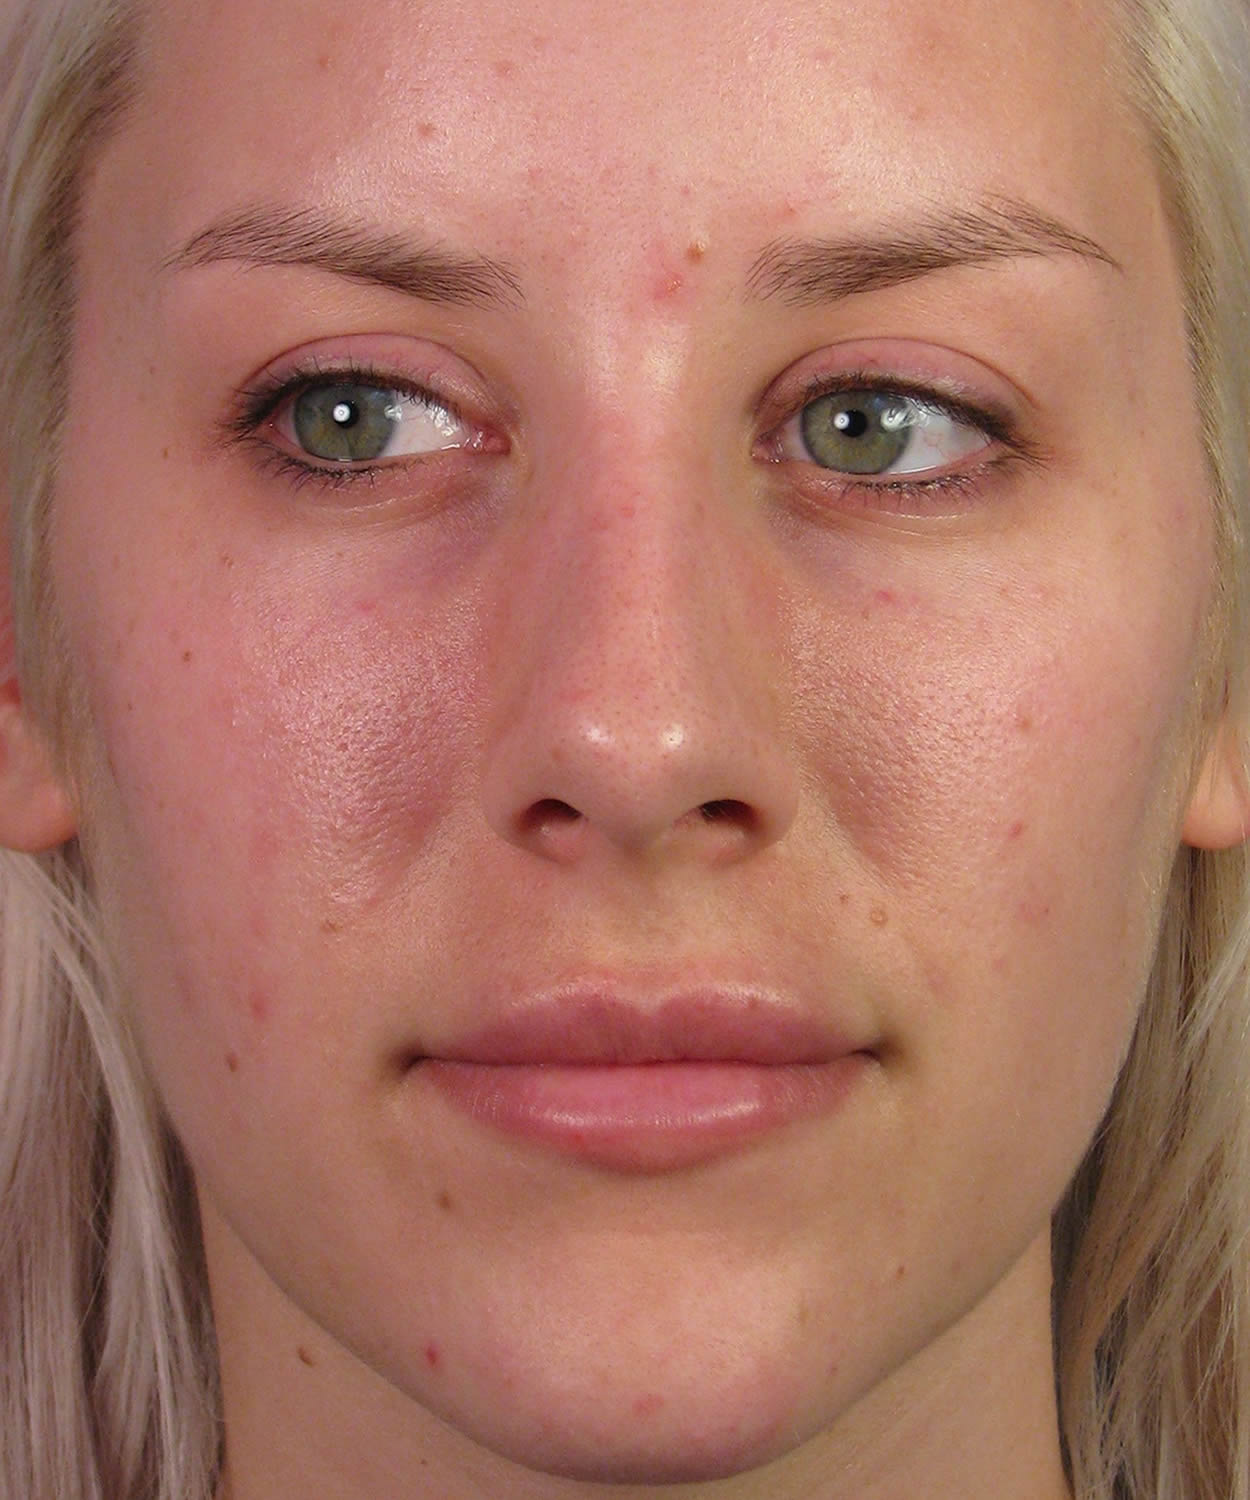 restylane injections under eyes